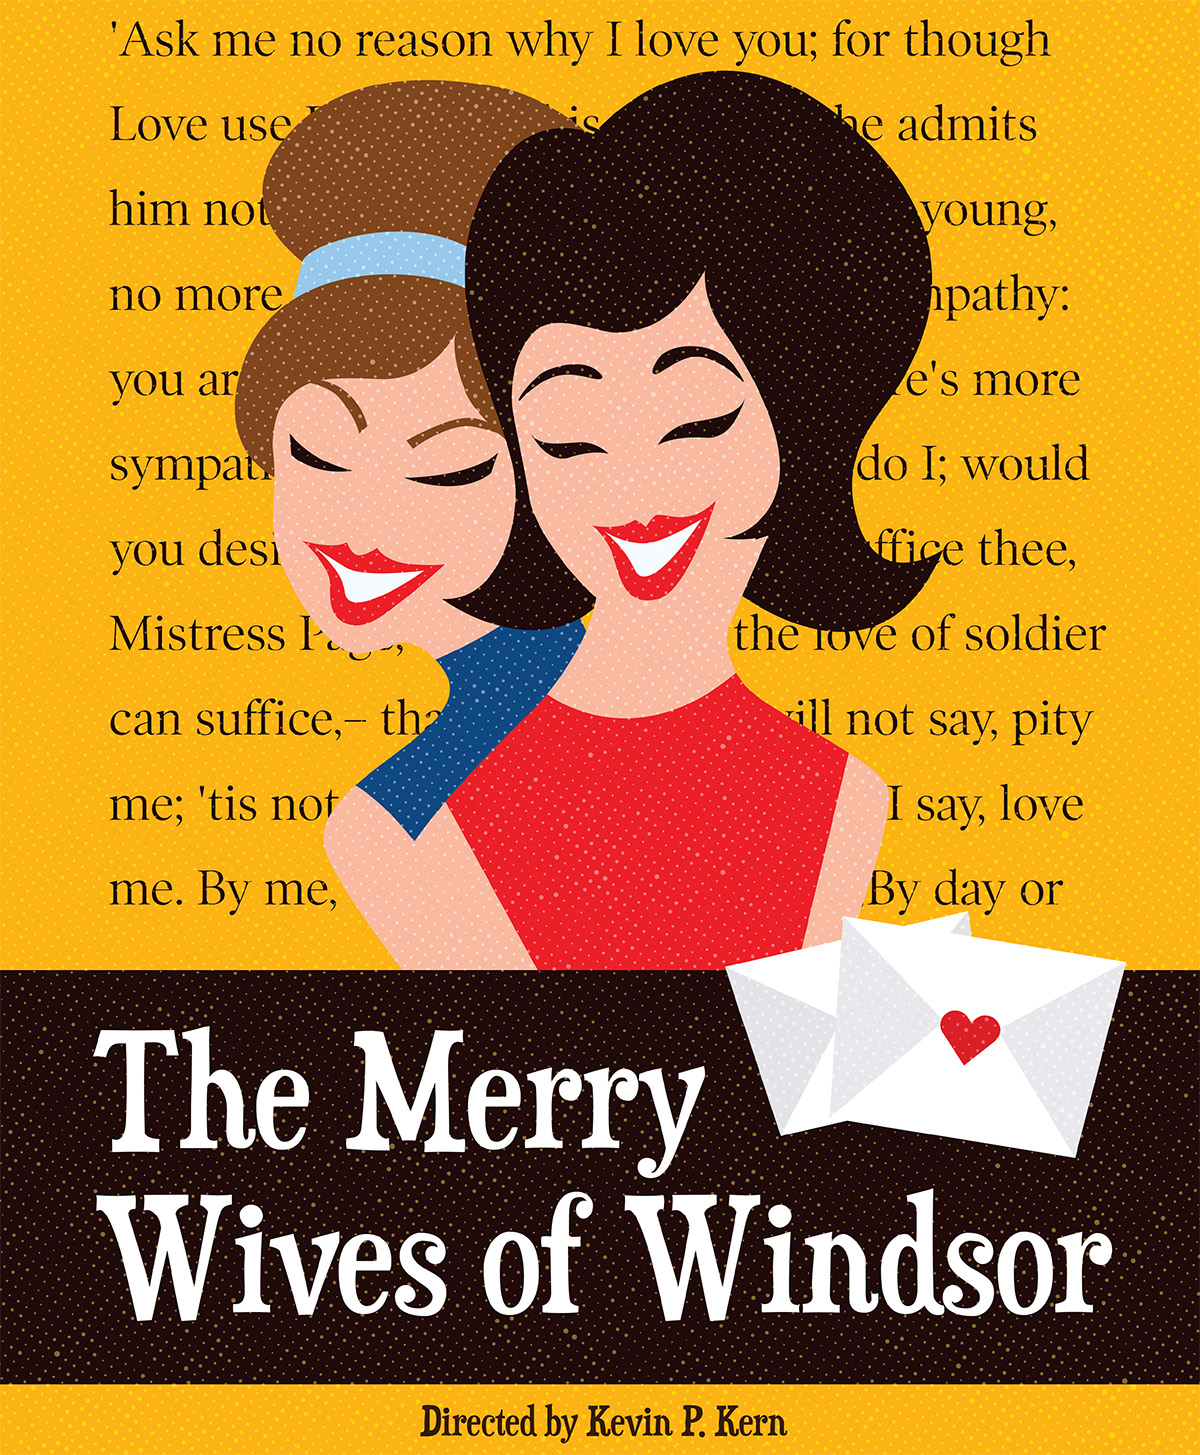 merrywives graphic